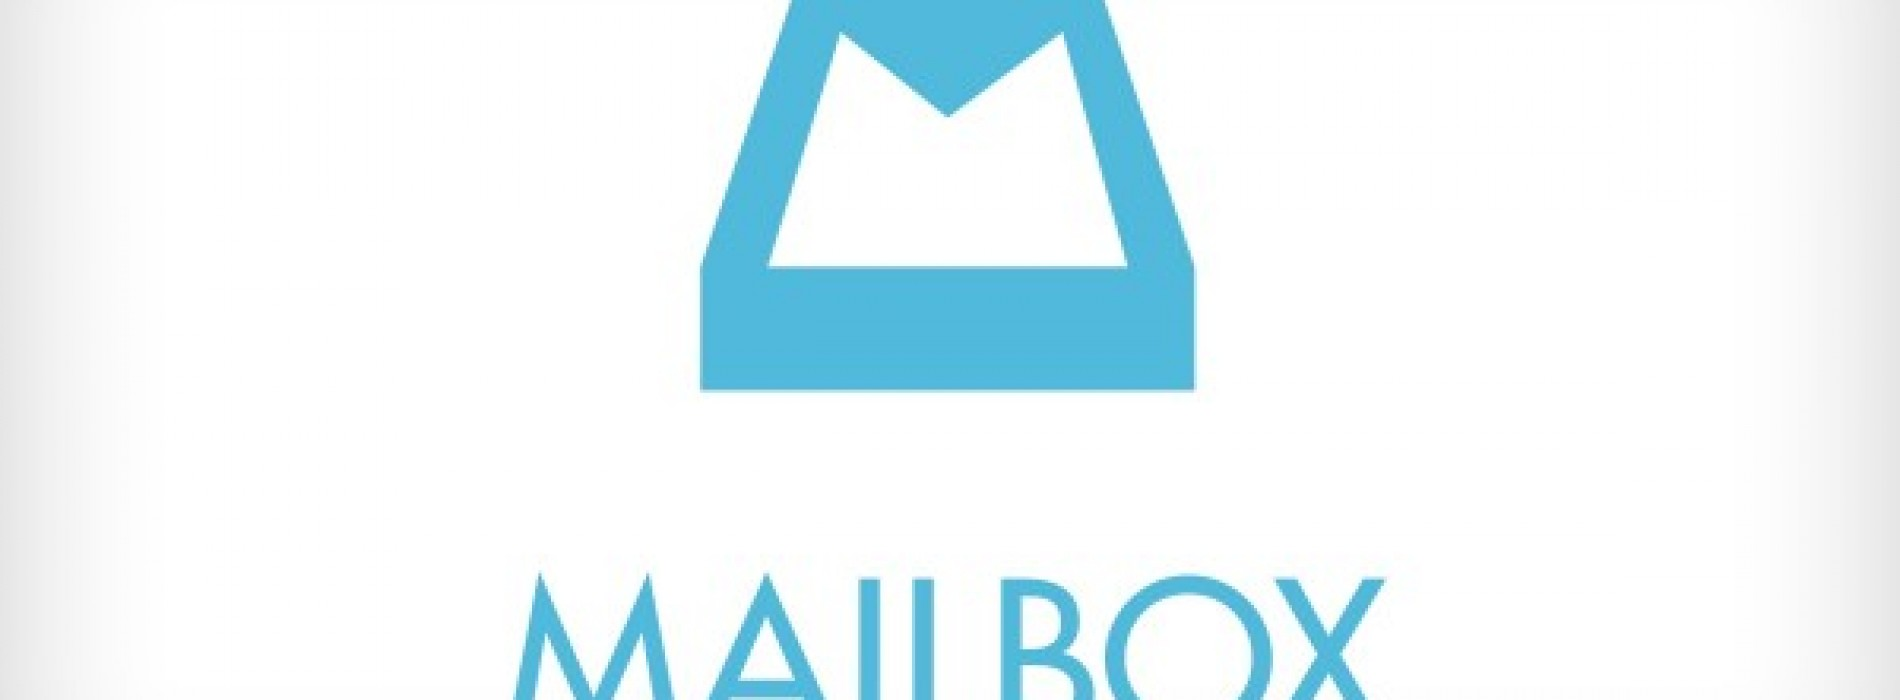 Dropbox announces Mailbox for Android